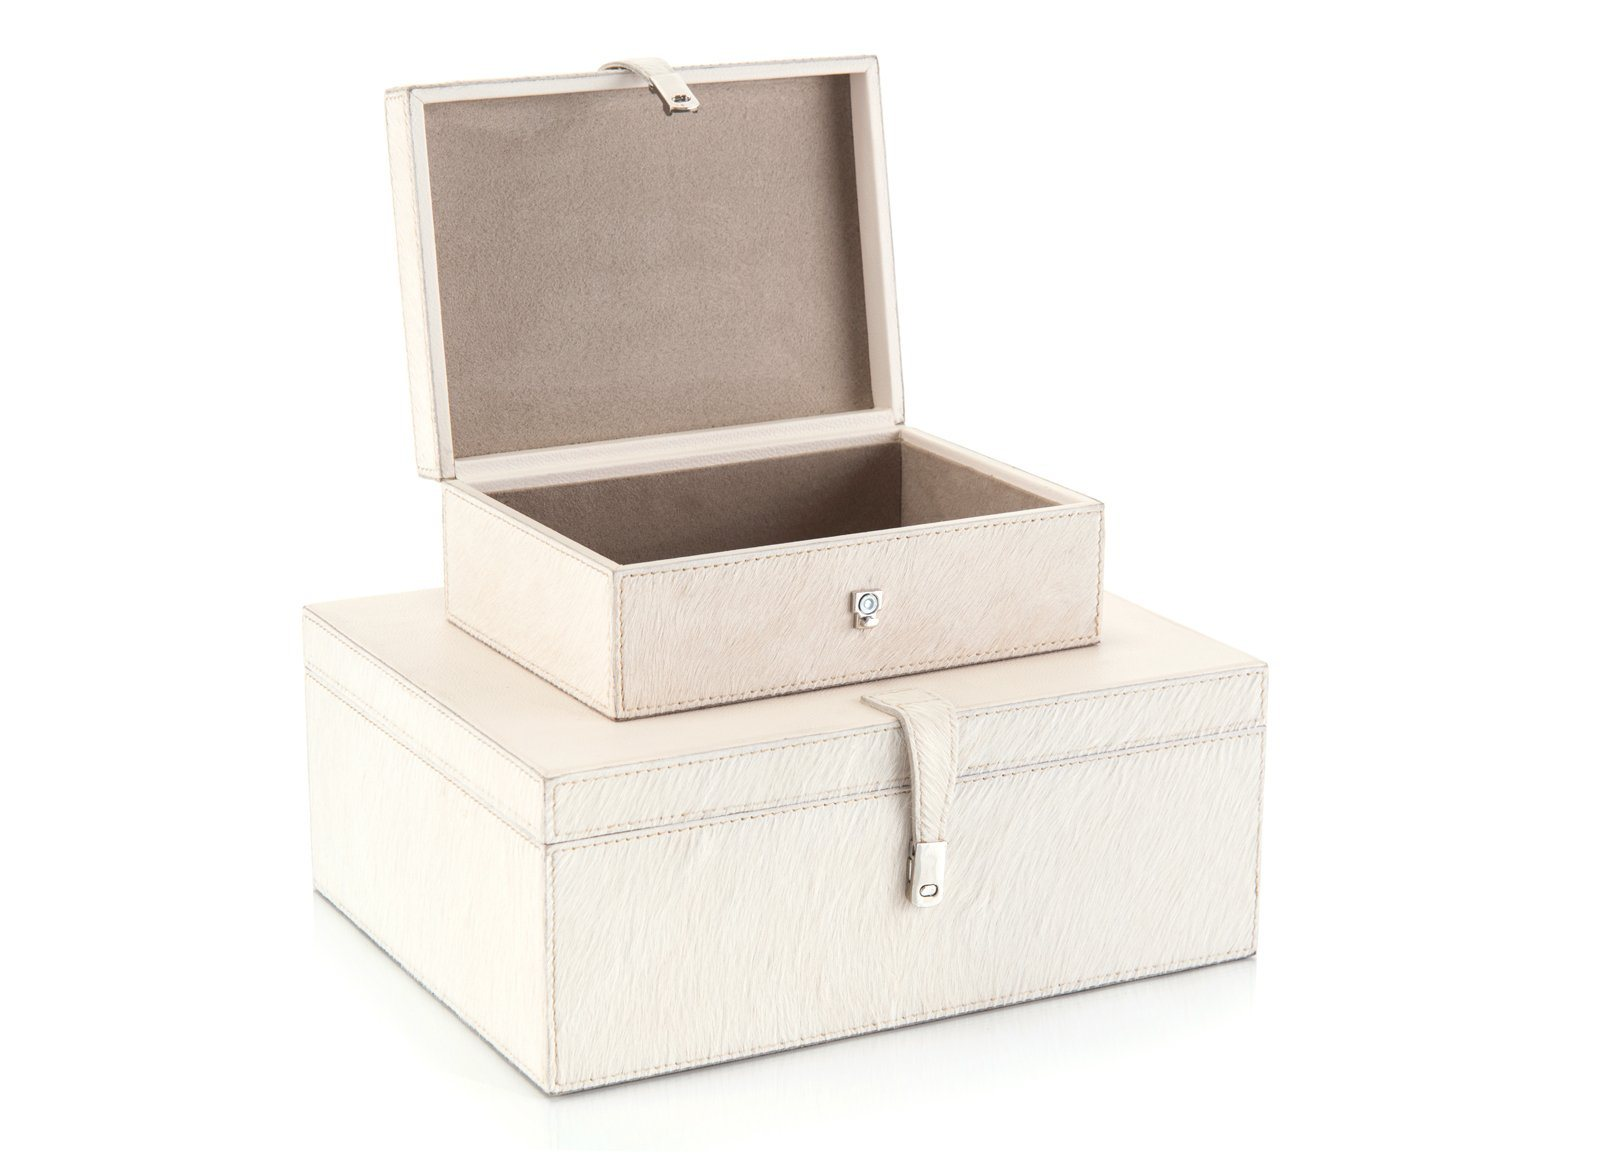 Set of Two Cream Leather Boxes Opened